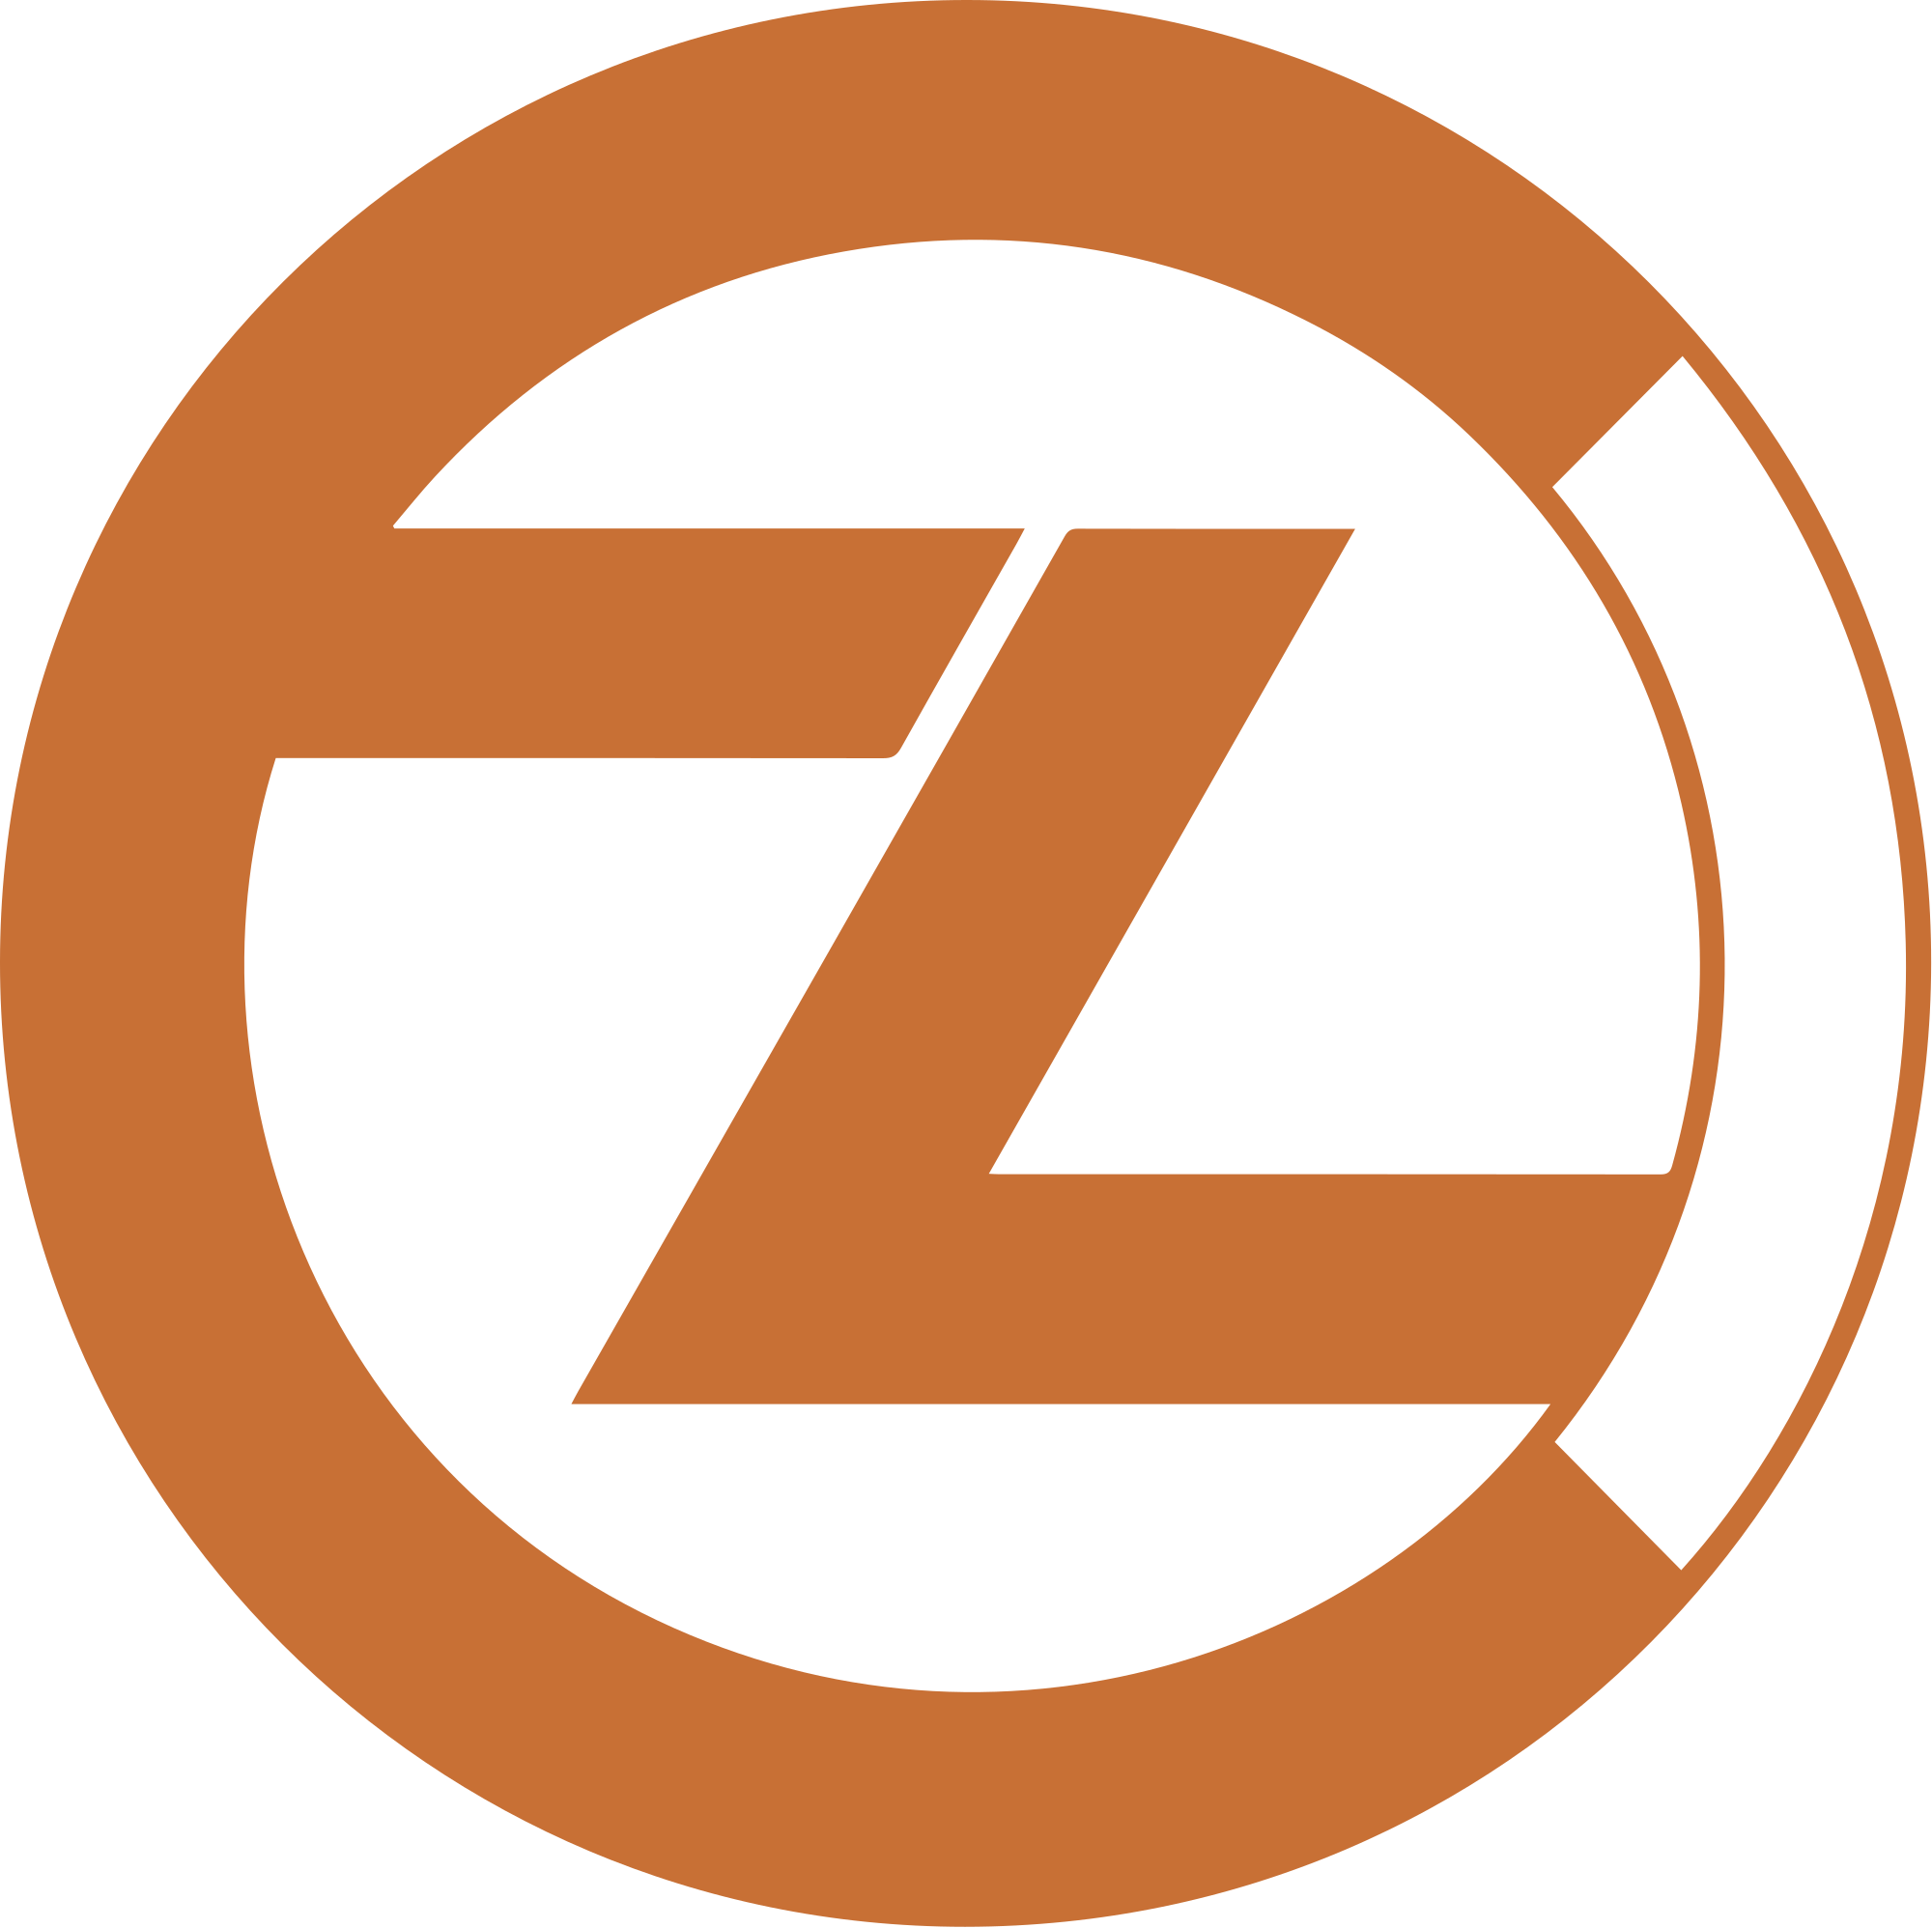 ZClassic (ZCL) coin